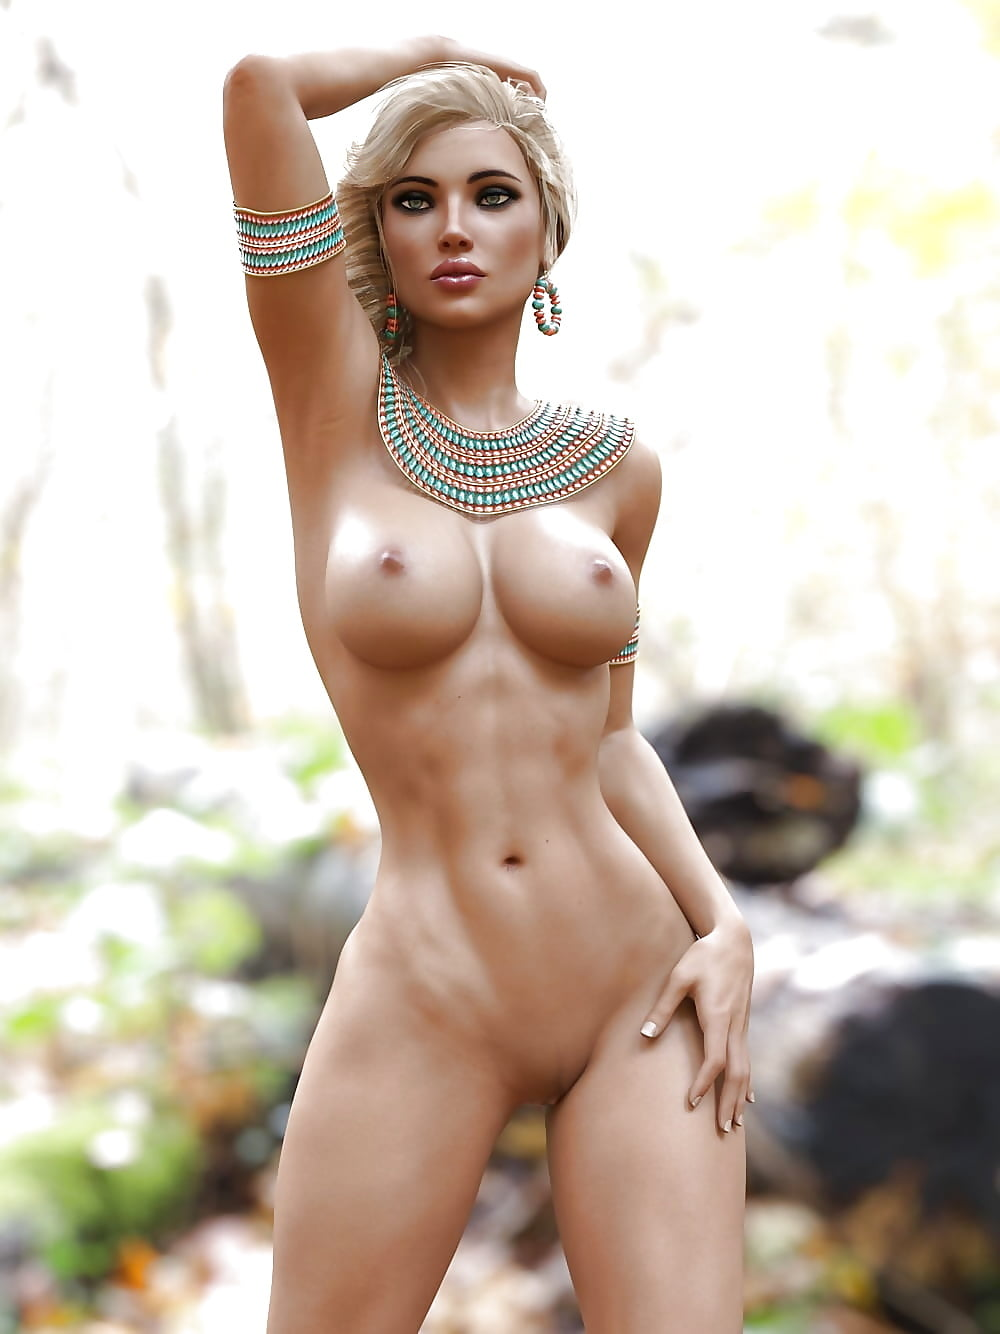 Amazing 3D Porn Art assorted 3d art - king of tha dome - 70 pics | xhamster